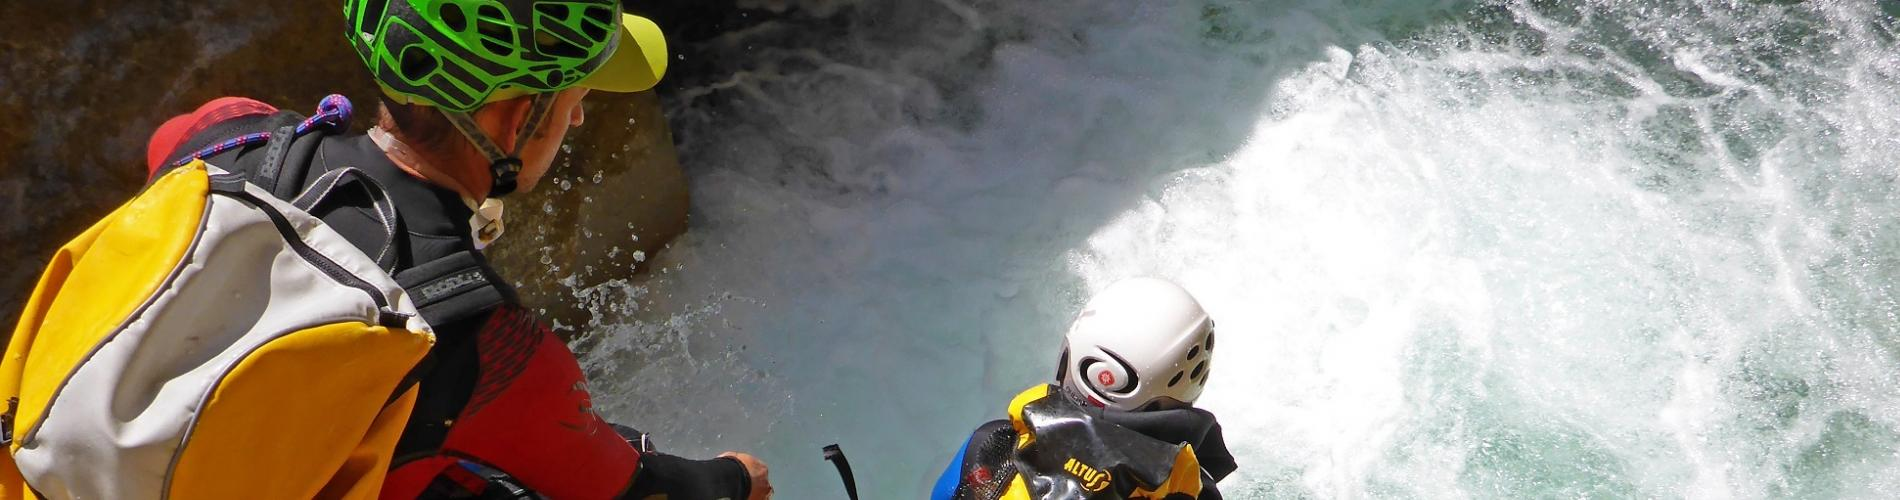 voyages aventure Canyoning